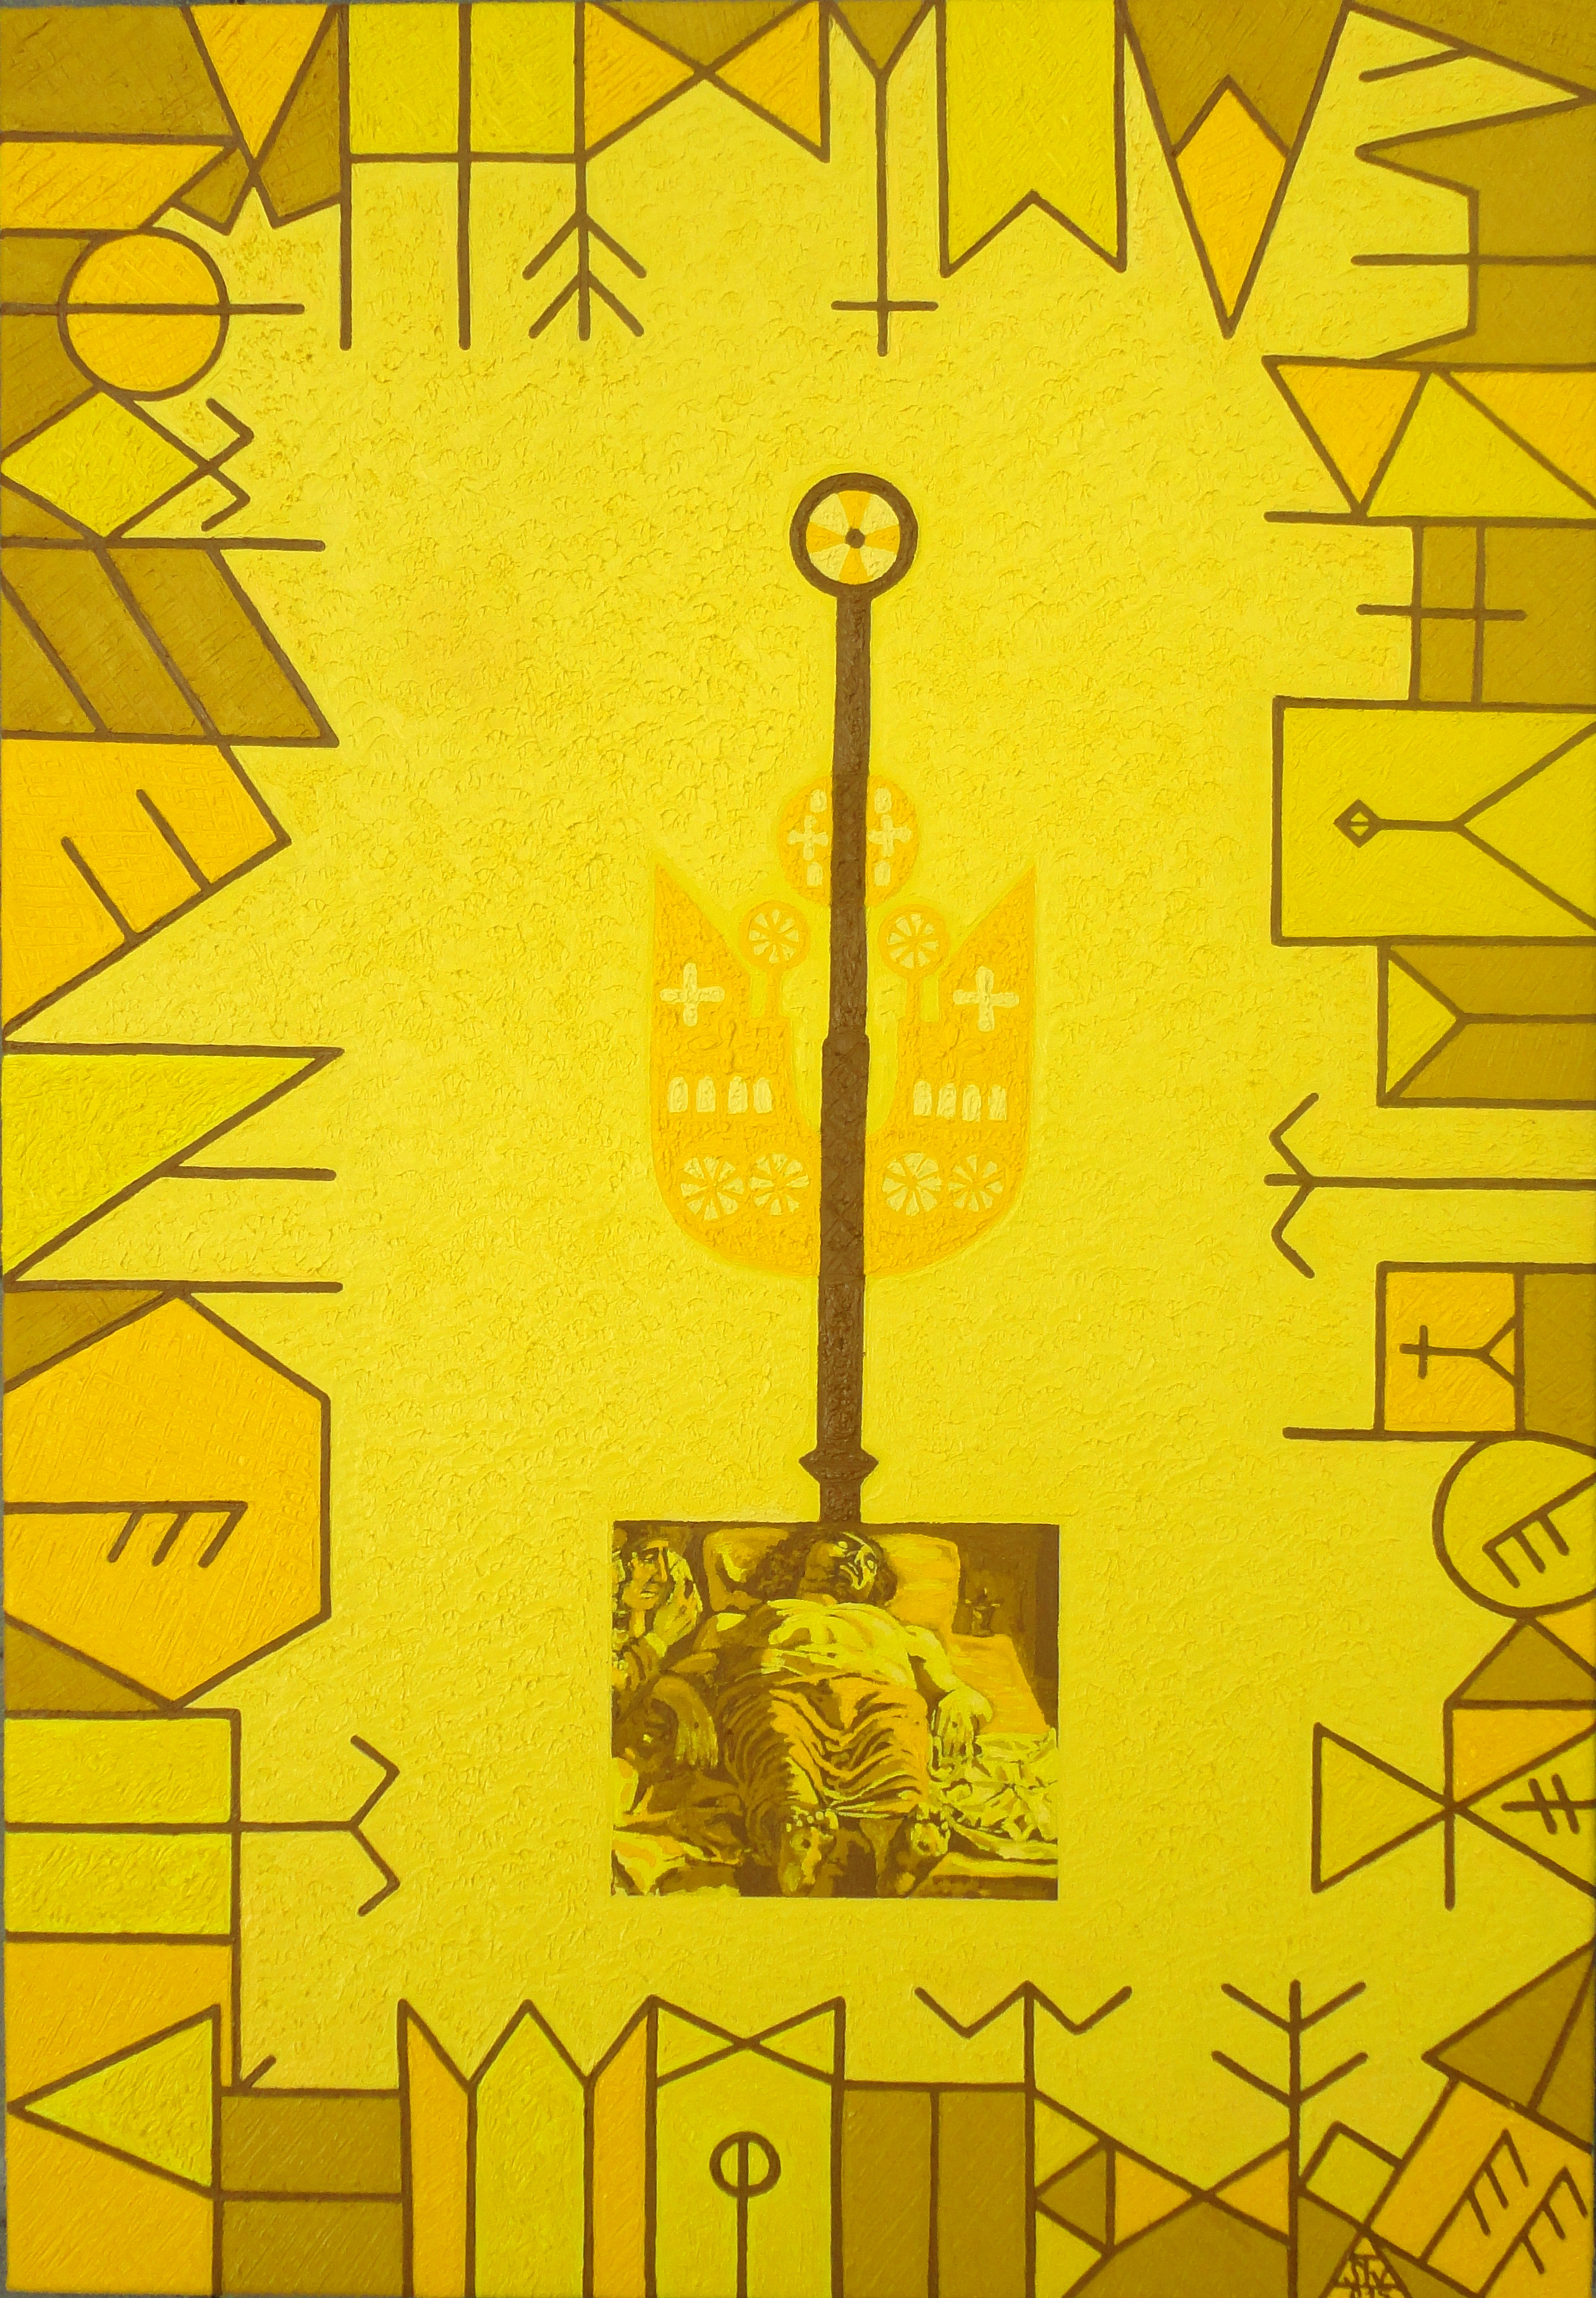 Text and Time 110 artwork by Constantin Severin - art listed for sale on Artplode